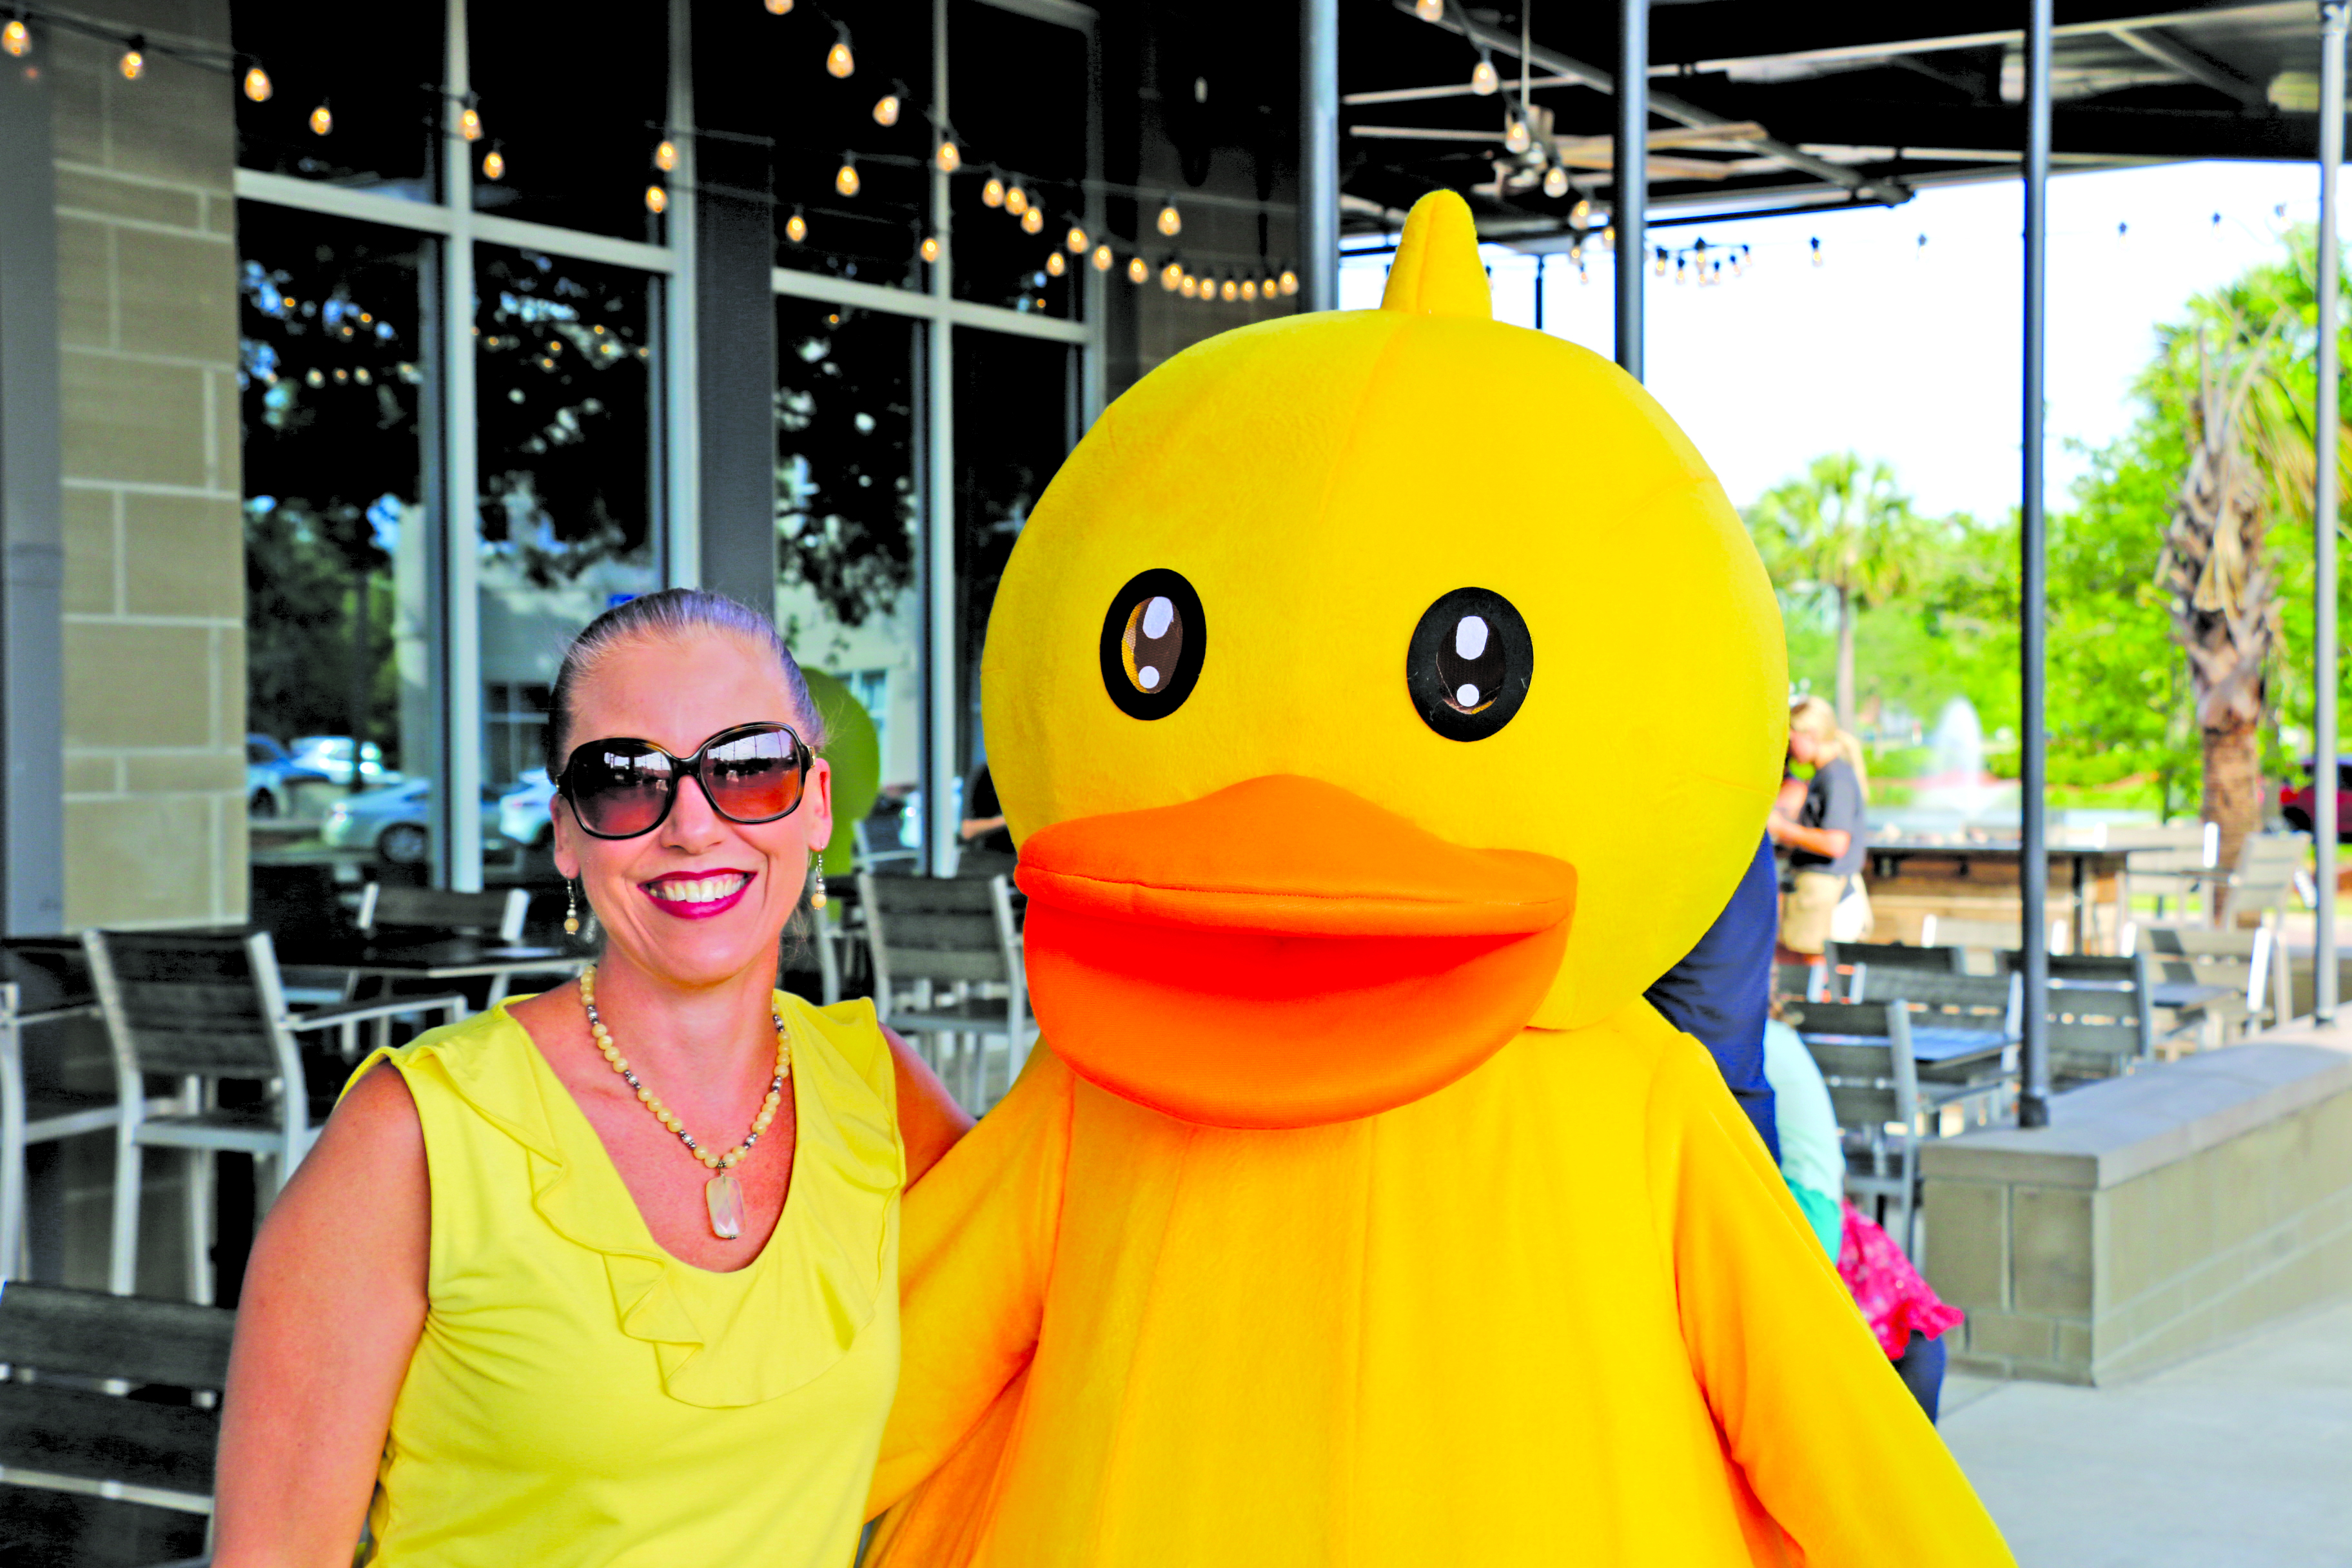 Heather Platzer stands with her husband, James,who is dressed in the duck costume.